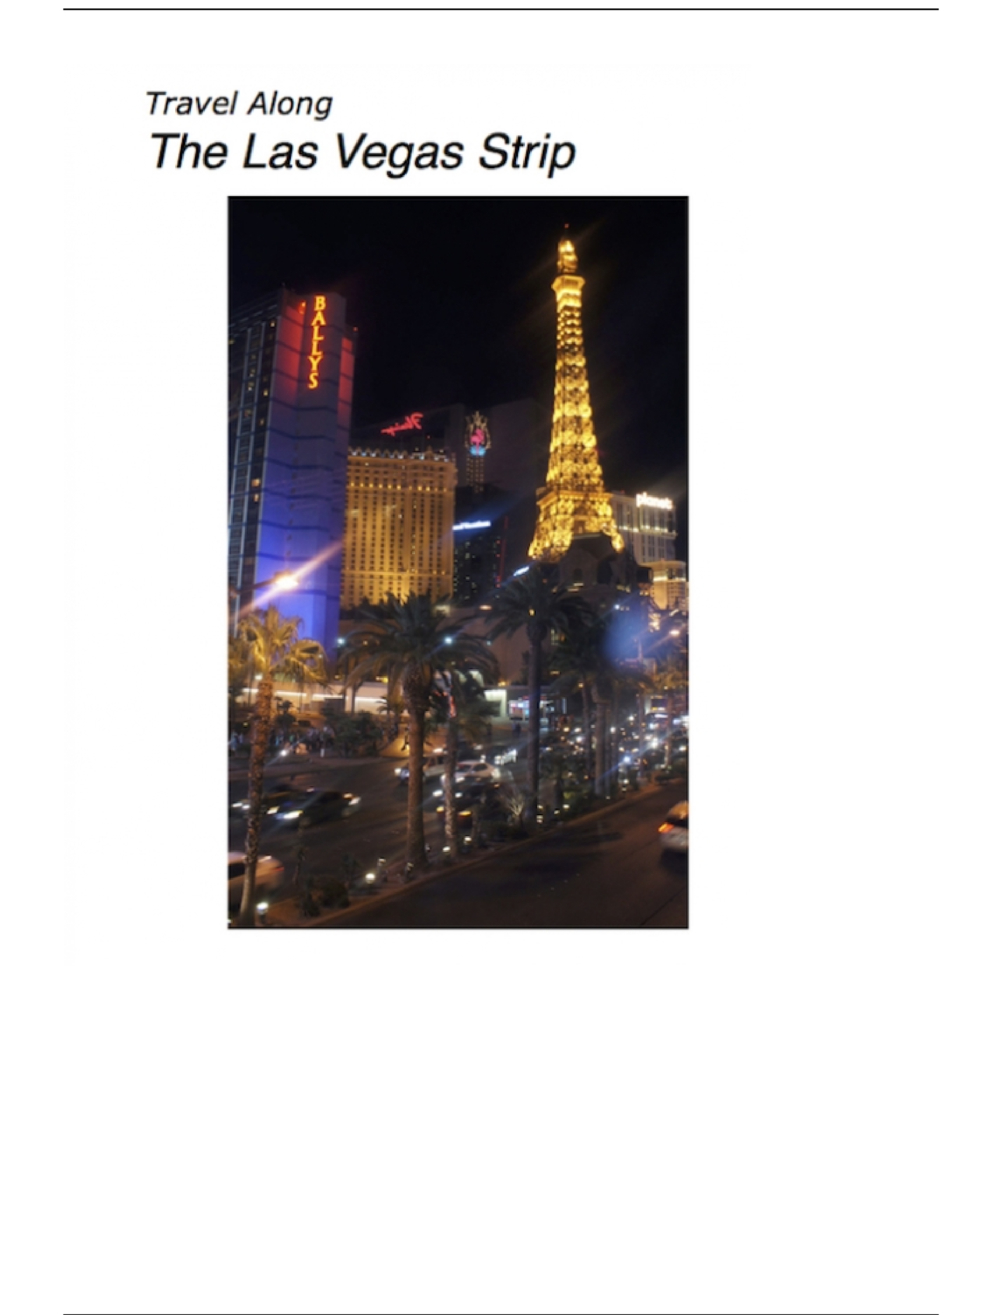 Nude Male Photo eBook Travel Along The Las Vegas Strip